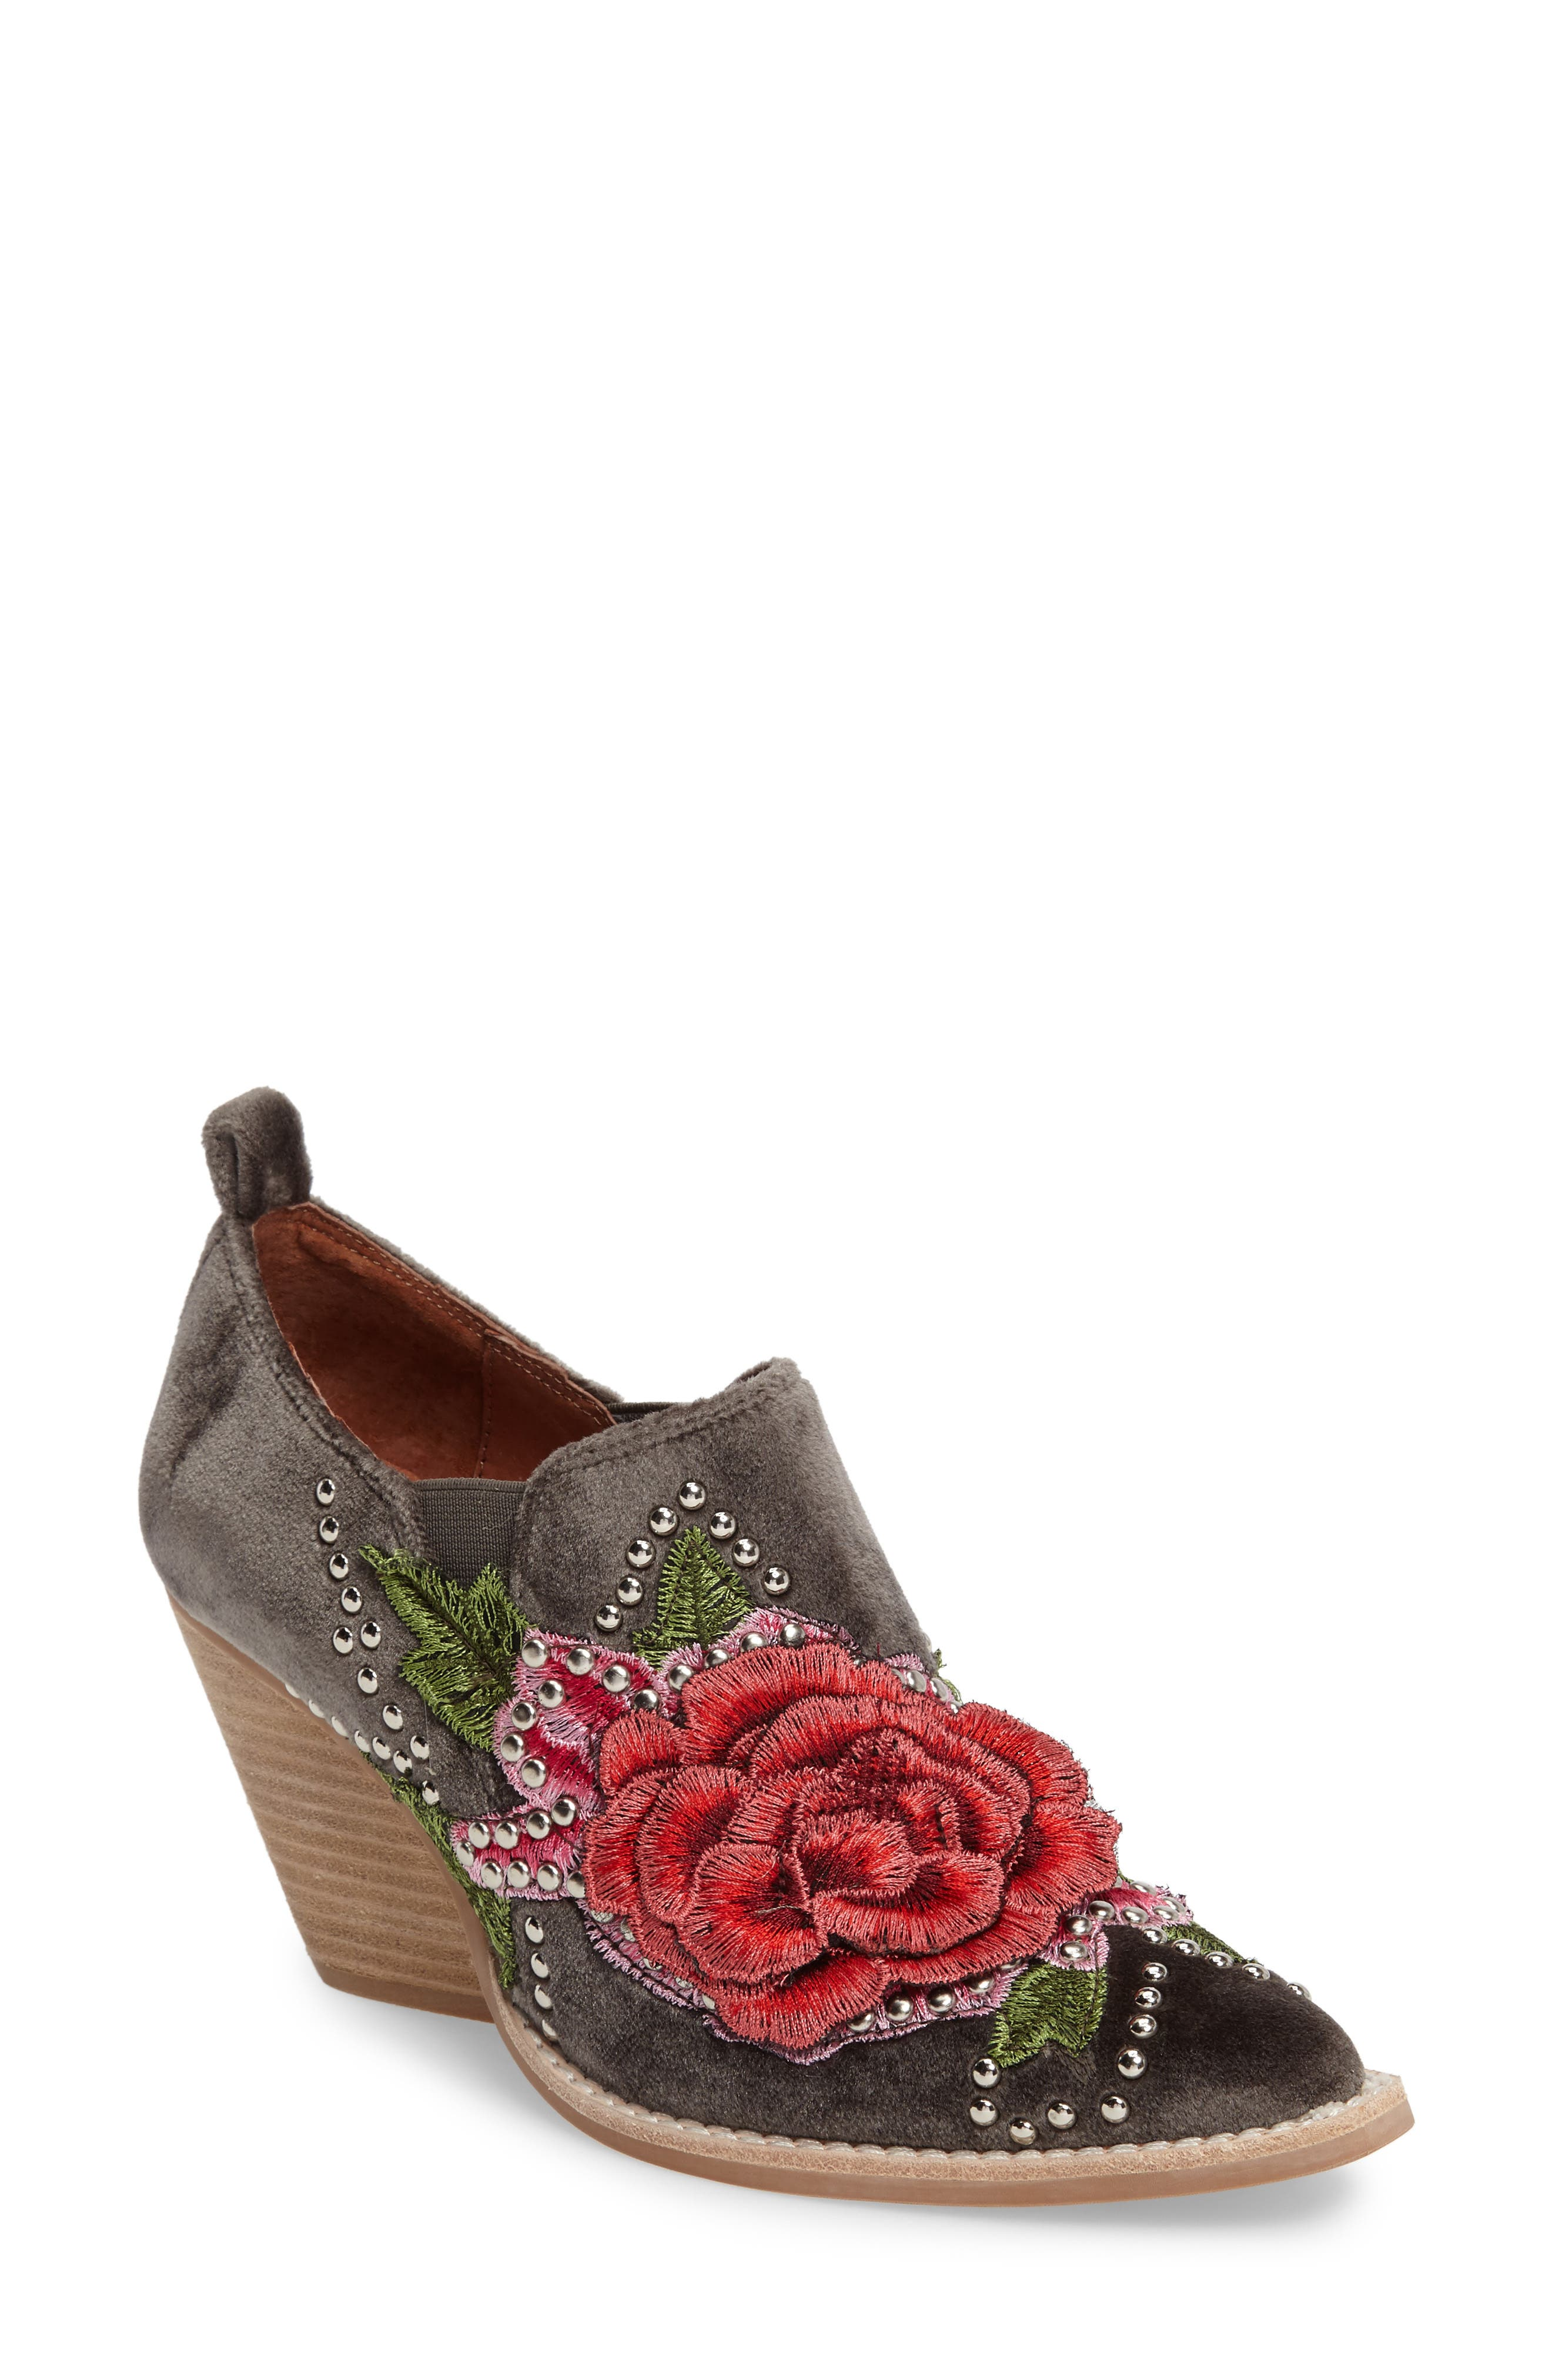 Alternate Image 1 Selected - Jeffrey Campbell Roseola Studded Appliqué Bootie (Women)